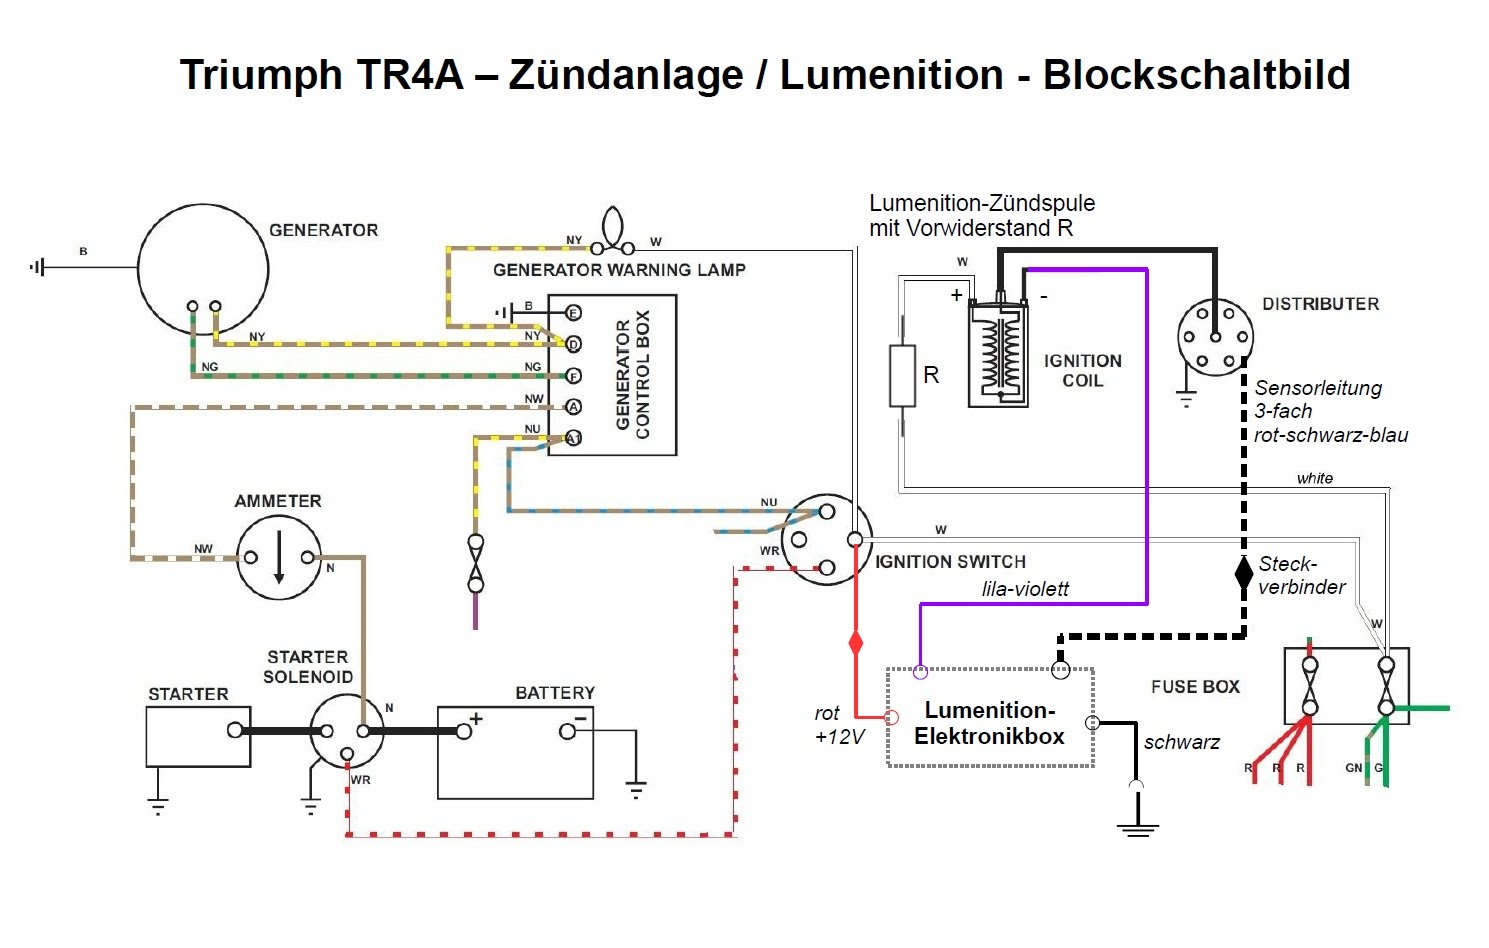 small resolution of lumenition optronic wiring diagram electrical wiring diagrams delphi wiring diagram lumenition ignition wiring diagram